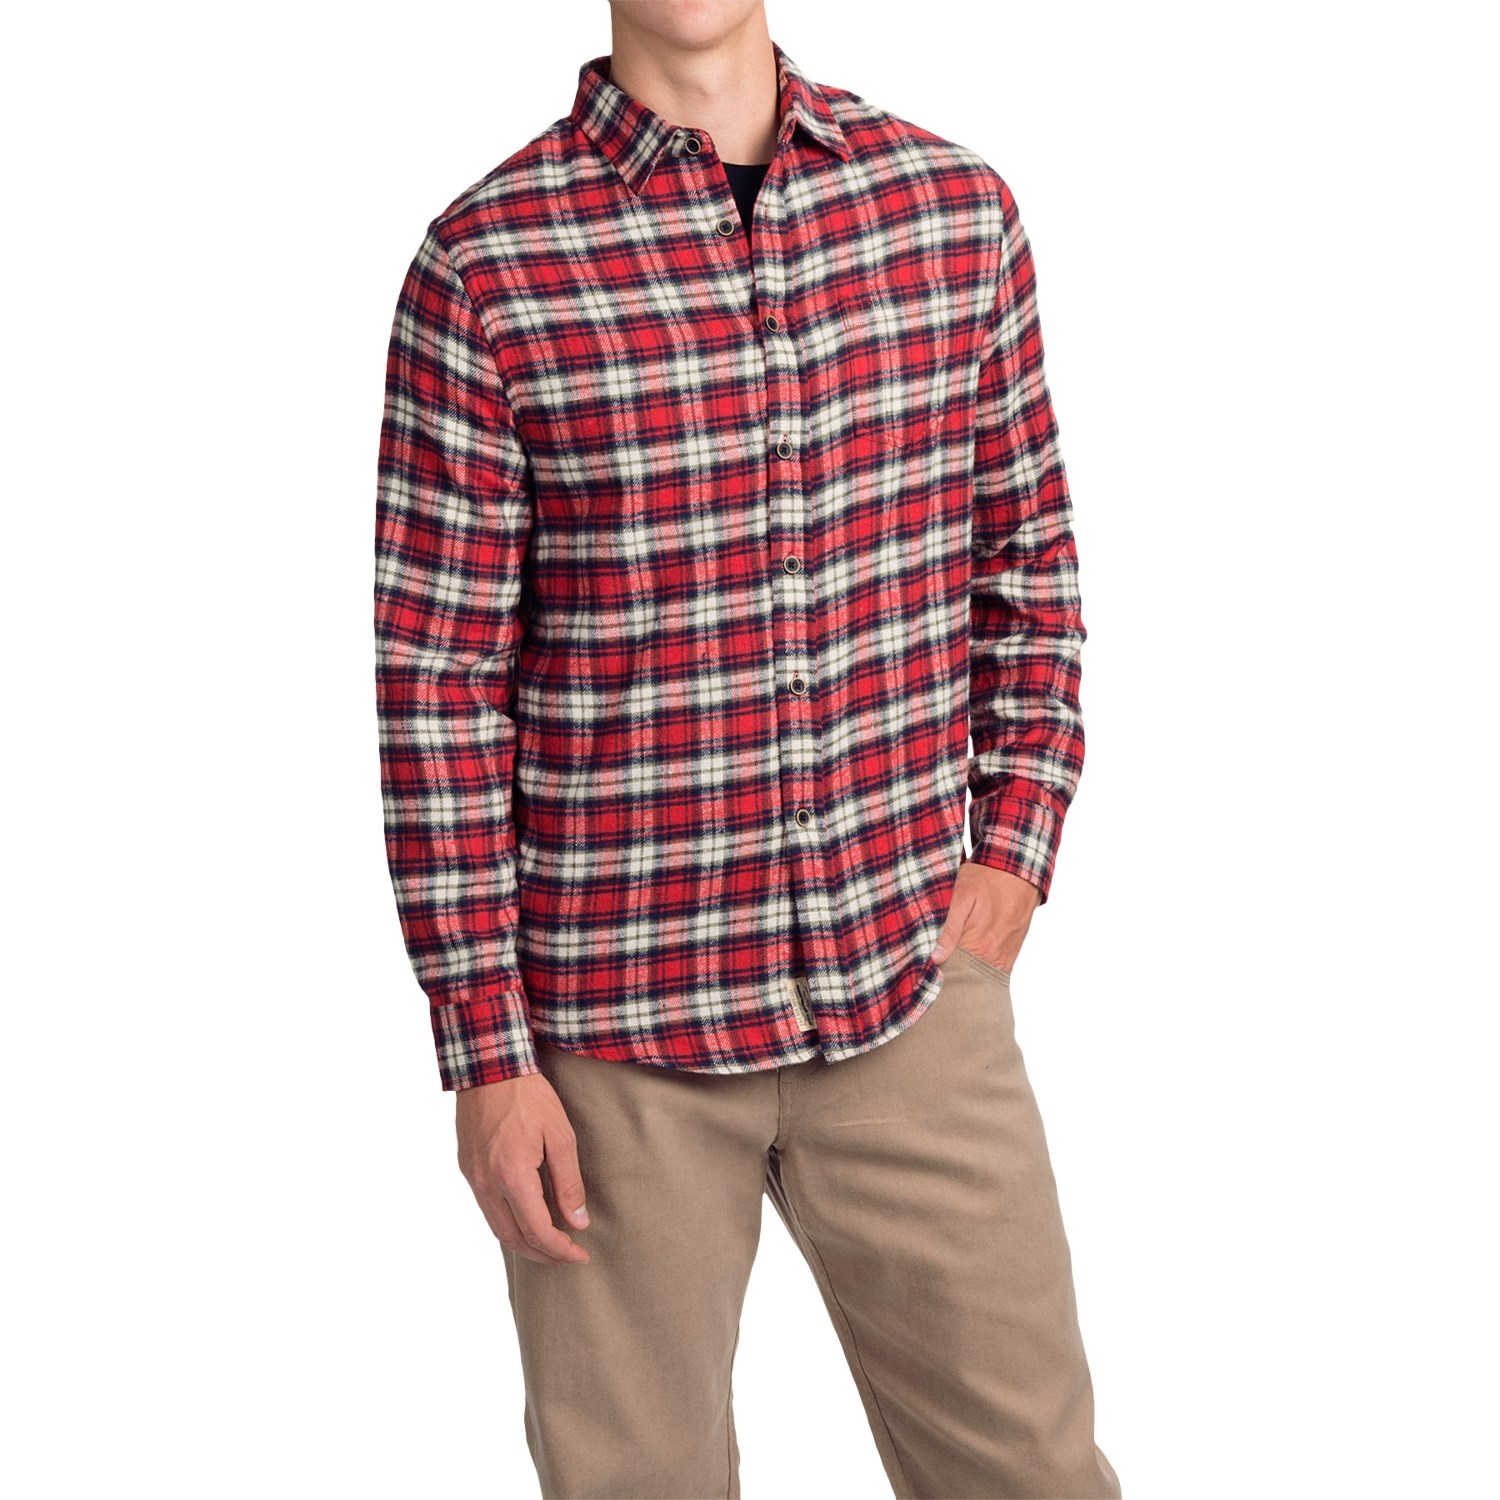 FREE SHIPPING AVAILABLE! Shop teraisompcz8d.ga and save on Plaid Shirts.